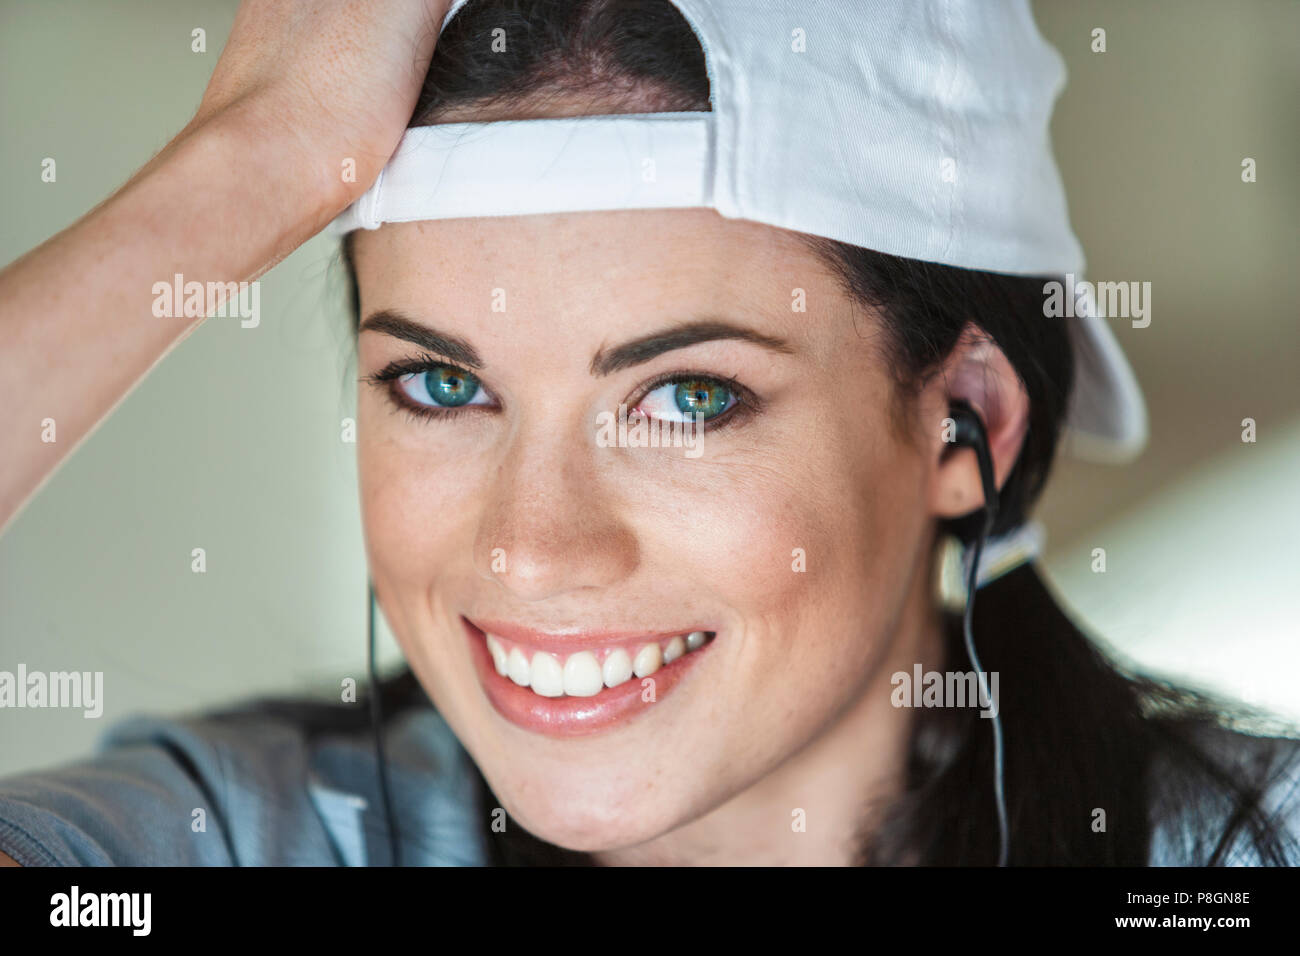 Portrait of young woman with earphones wearing a cap Stock Photo